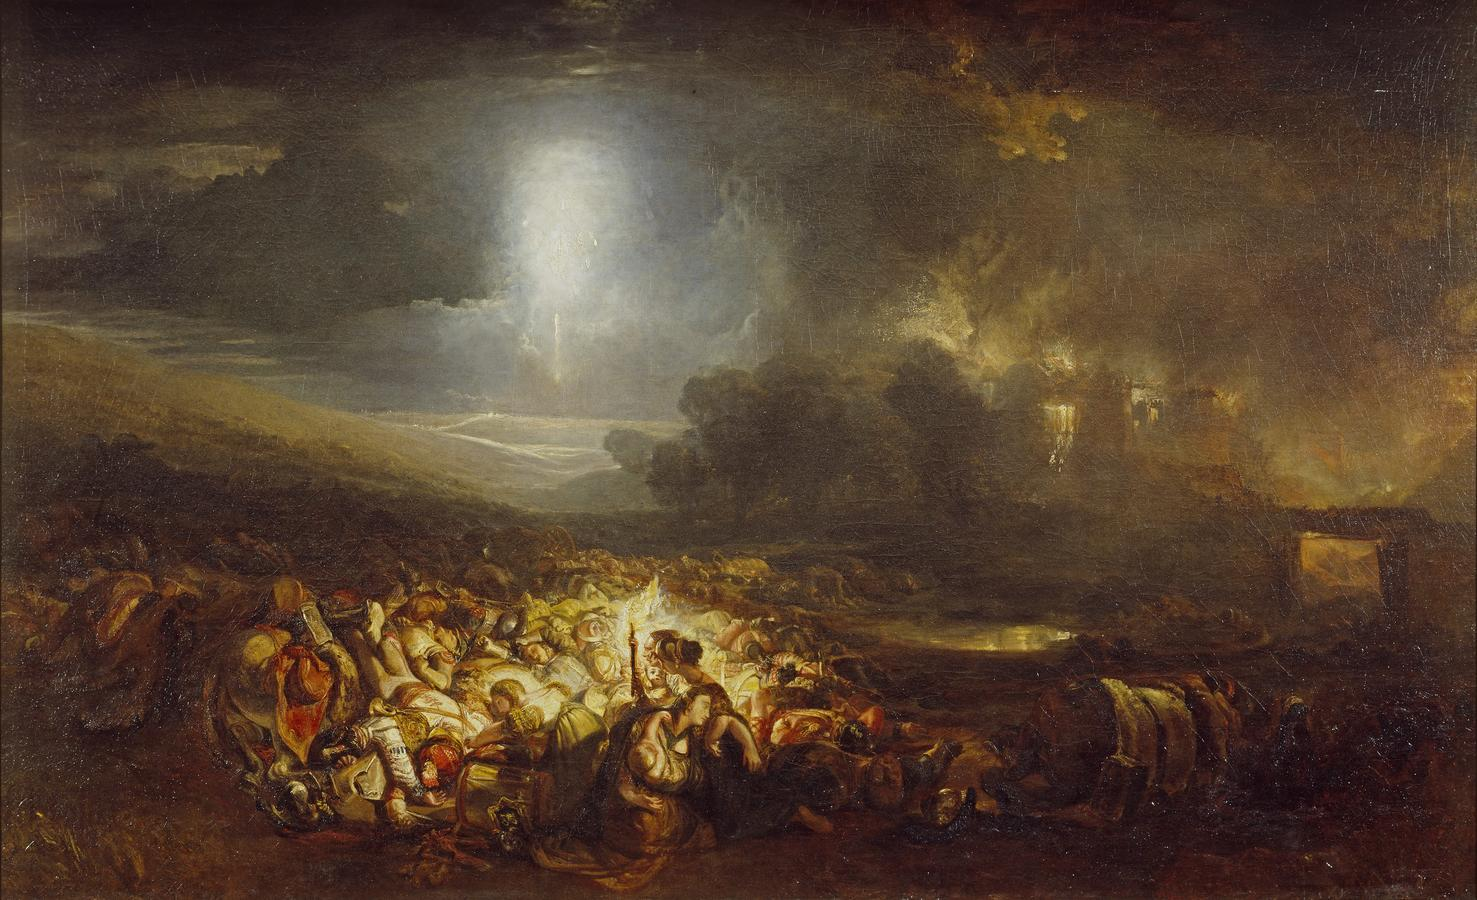 """J.M.W. Turner, """"The Field of Waterloo,"""" exhibited 1818, oil on canvas, 58 x 94 in. Tate Britain, London, accepted by the nation as part of the Turner Bequest 1856, N00500. Photo: © Tate, London, 2020"""